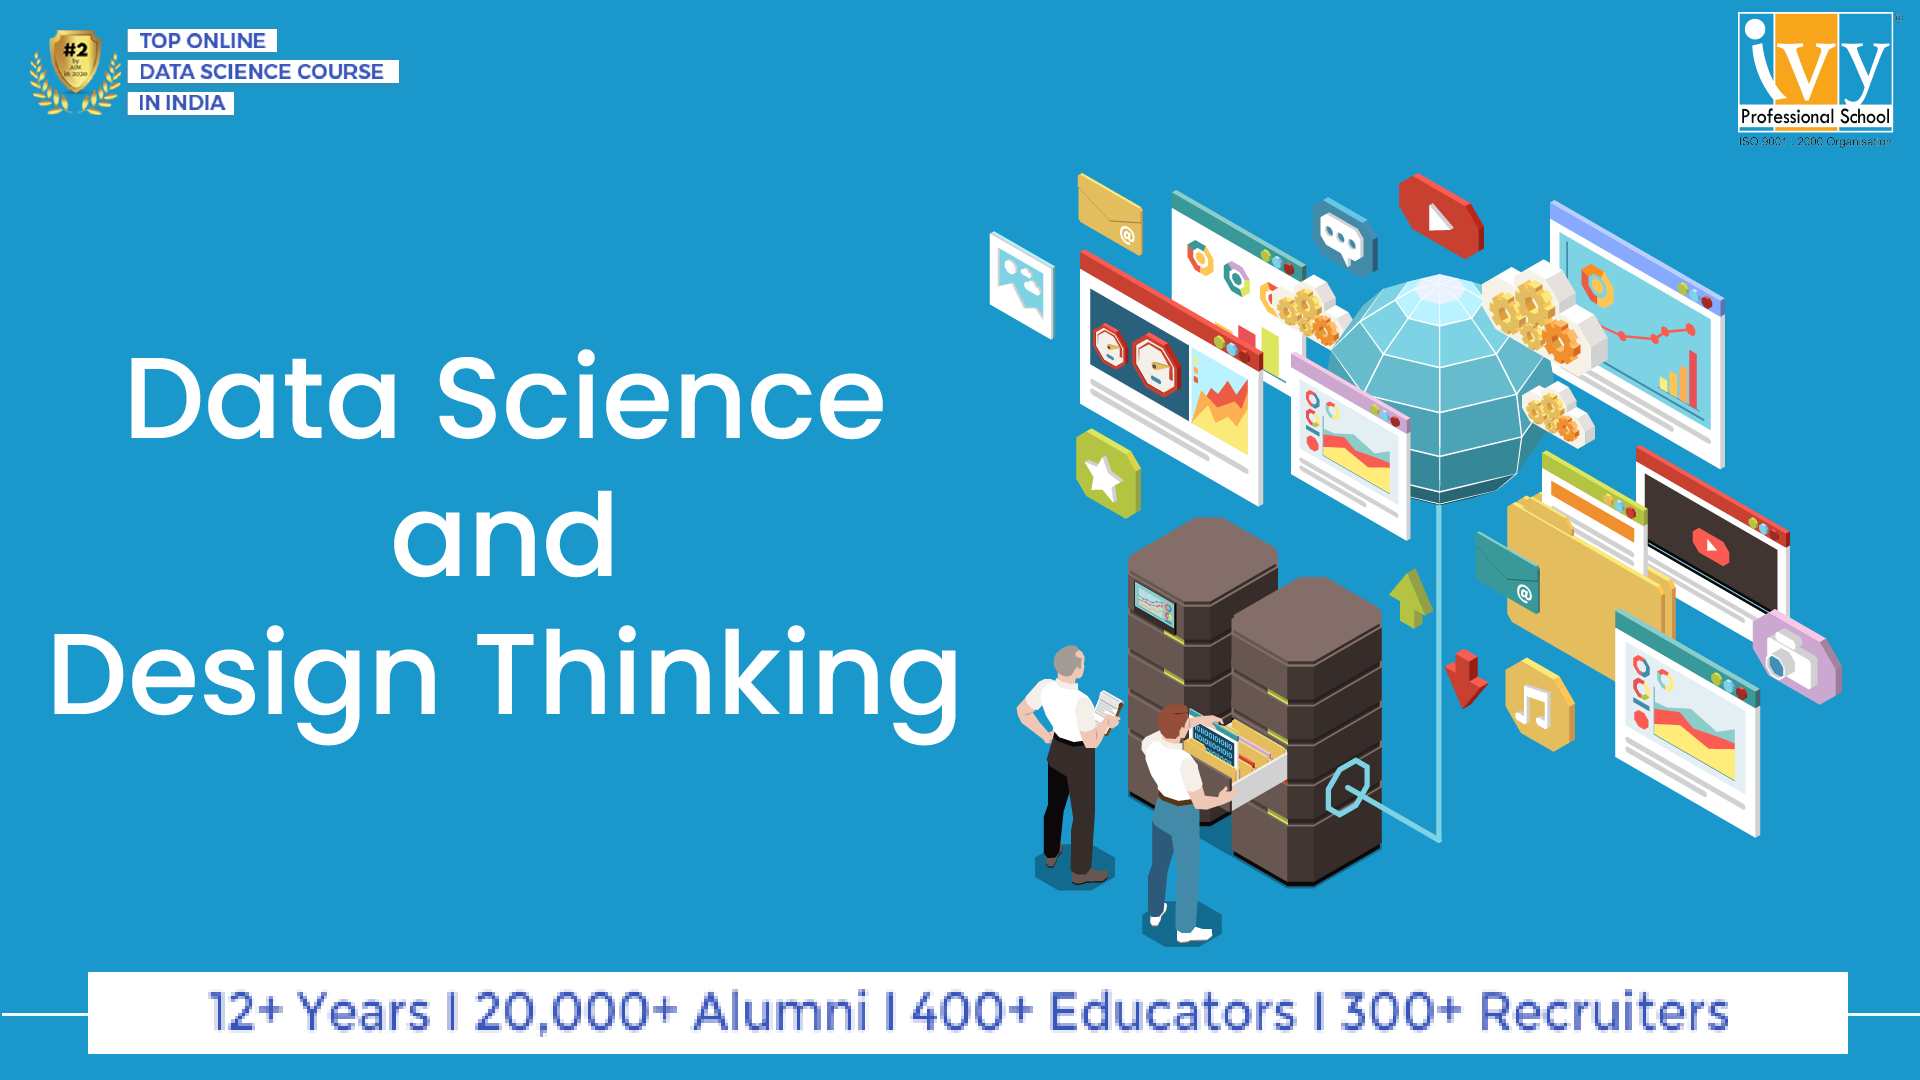 Data Science and Design Thinking